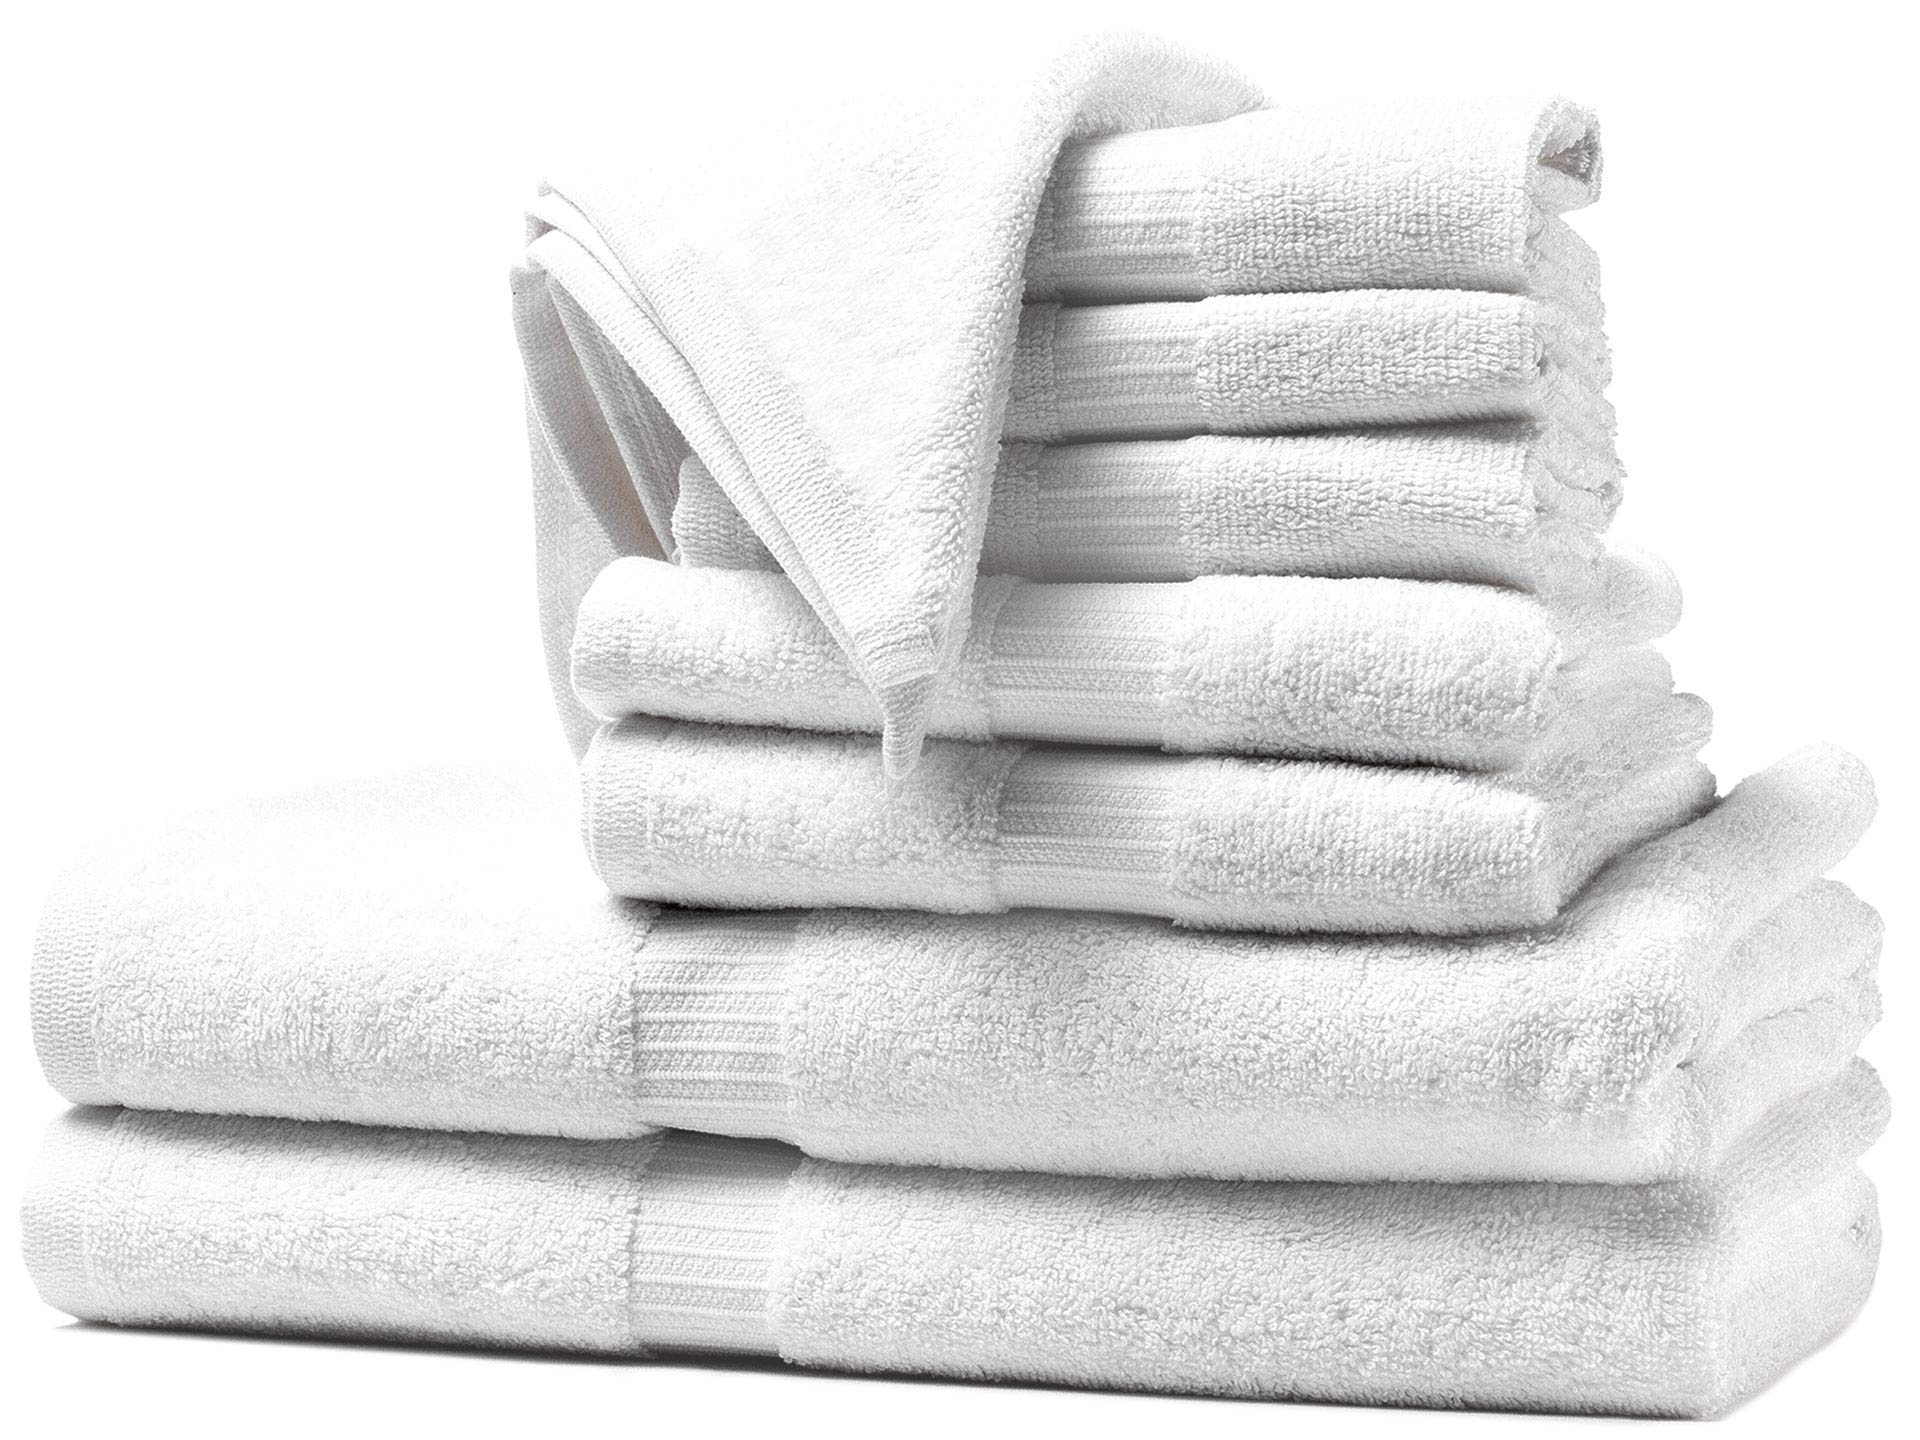 White Spindle Towels Hotel Collection 8 Piece Towel Set, Super Soft, Absorbent and Long Lasting Towel, Free of Harmful Chemicals (Oeko-TEX Approved)